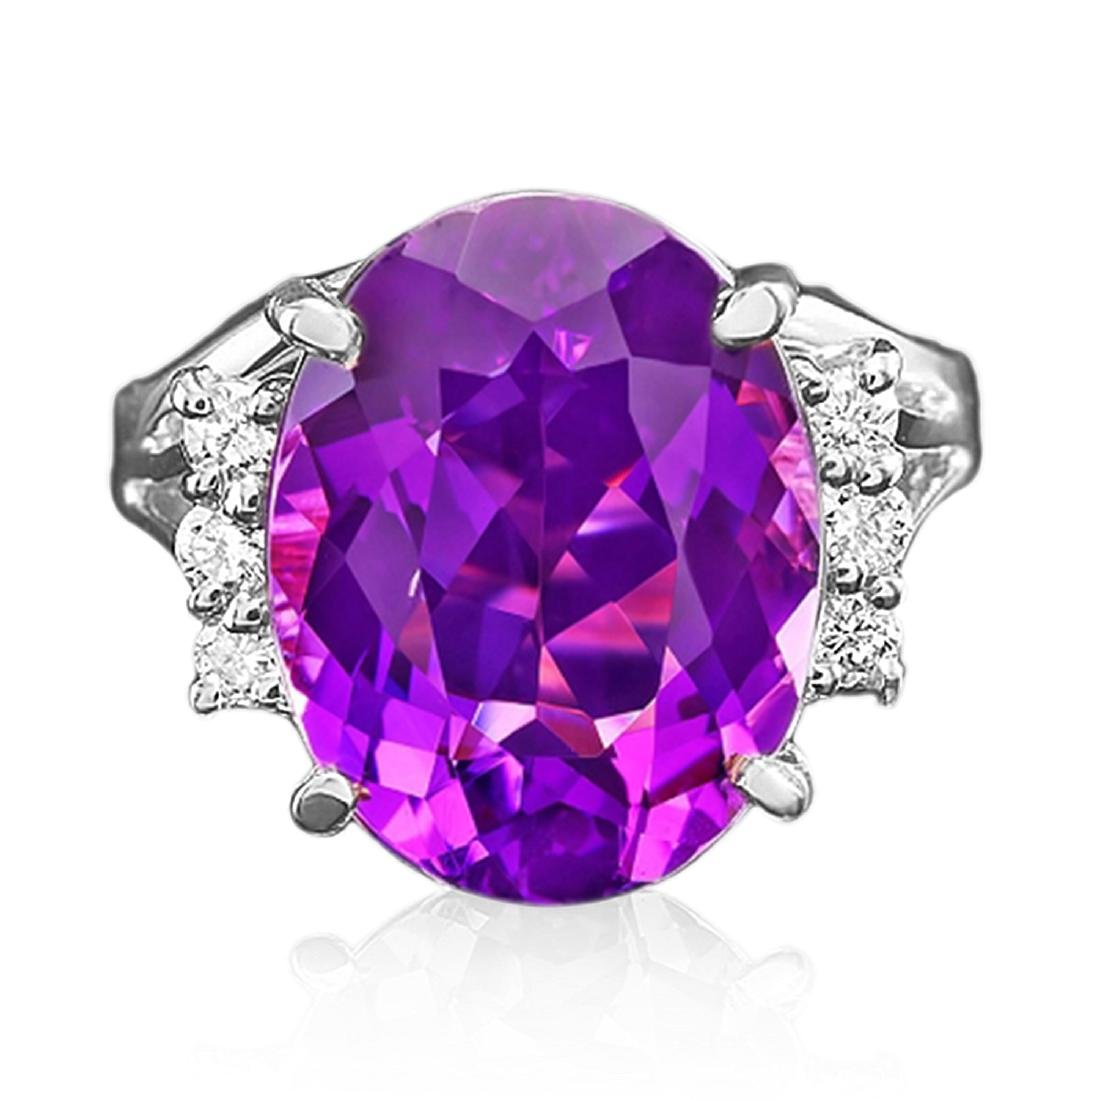 9.25 Carat Natural Amethyst 18K Solid White Gold